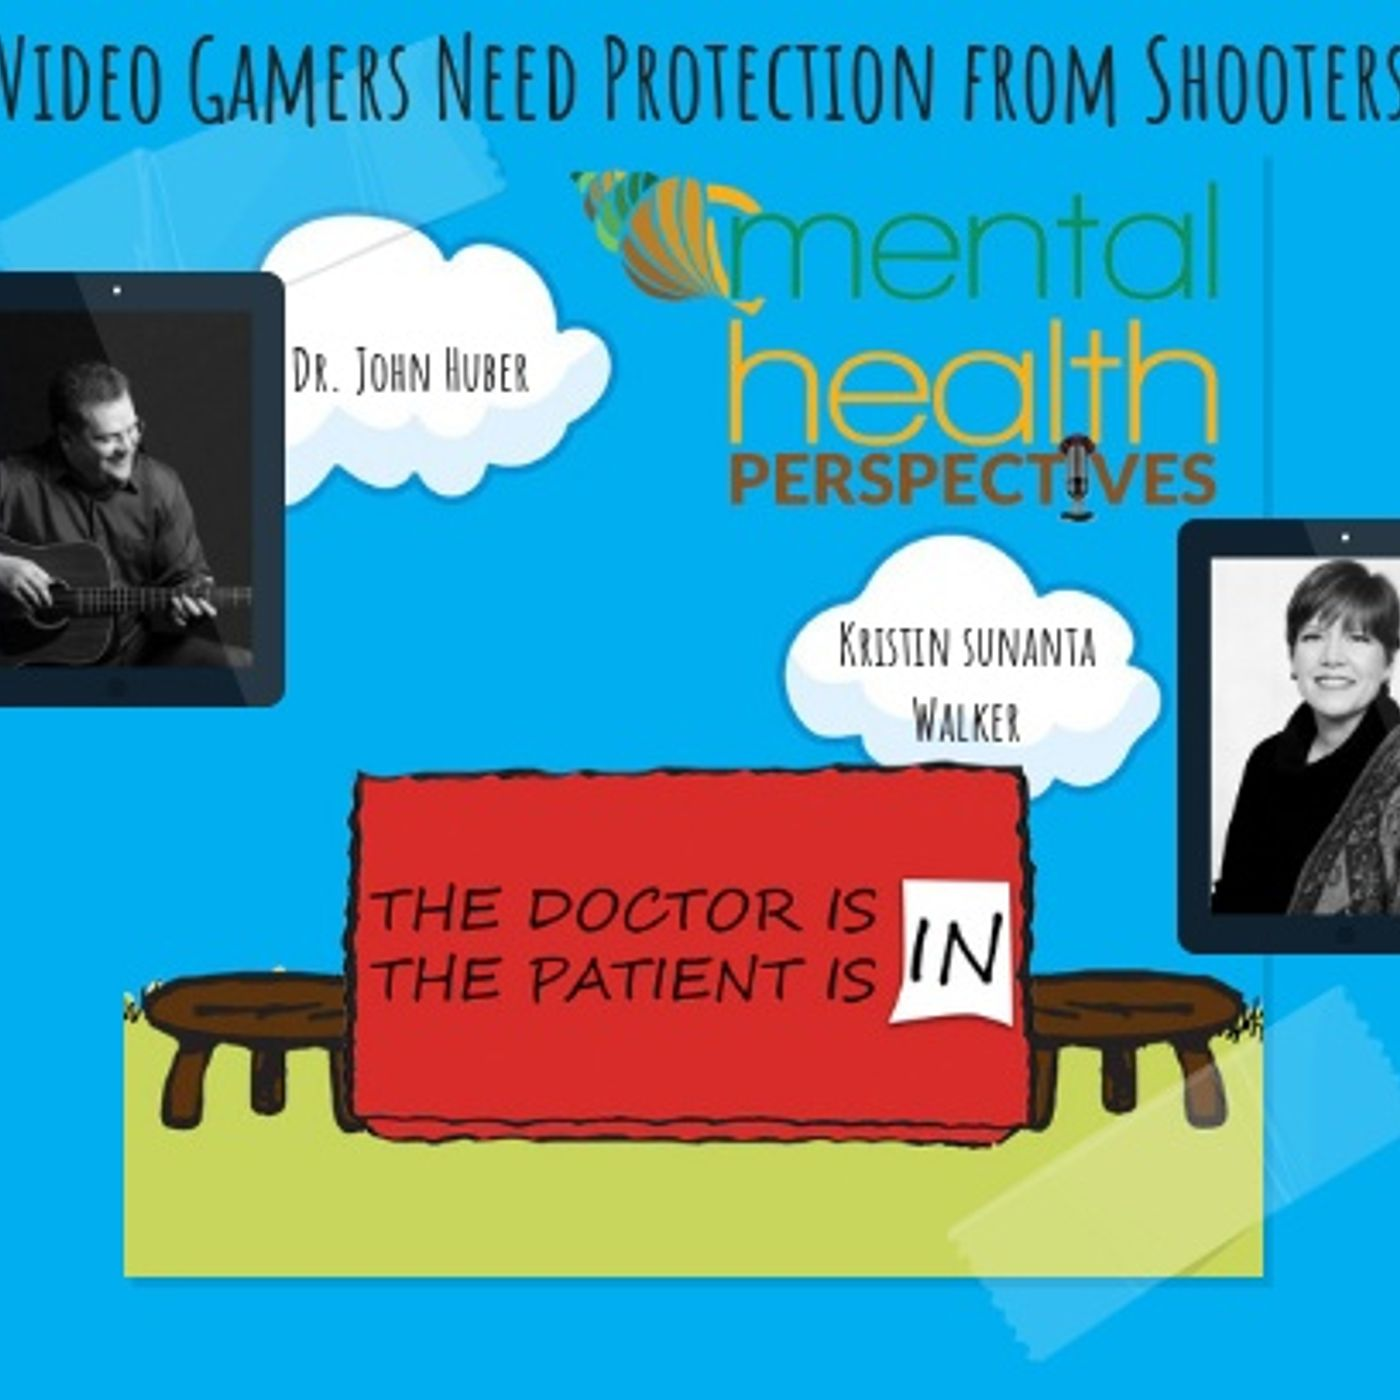 Mental Health News Radio - Mental Health Perspectives: Video Gamers Need Protection from Shooters